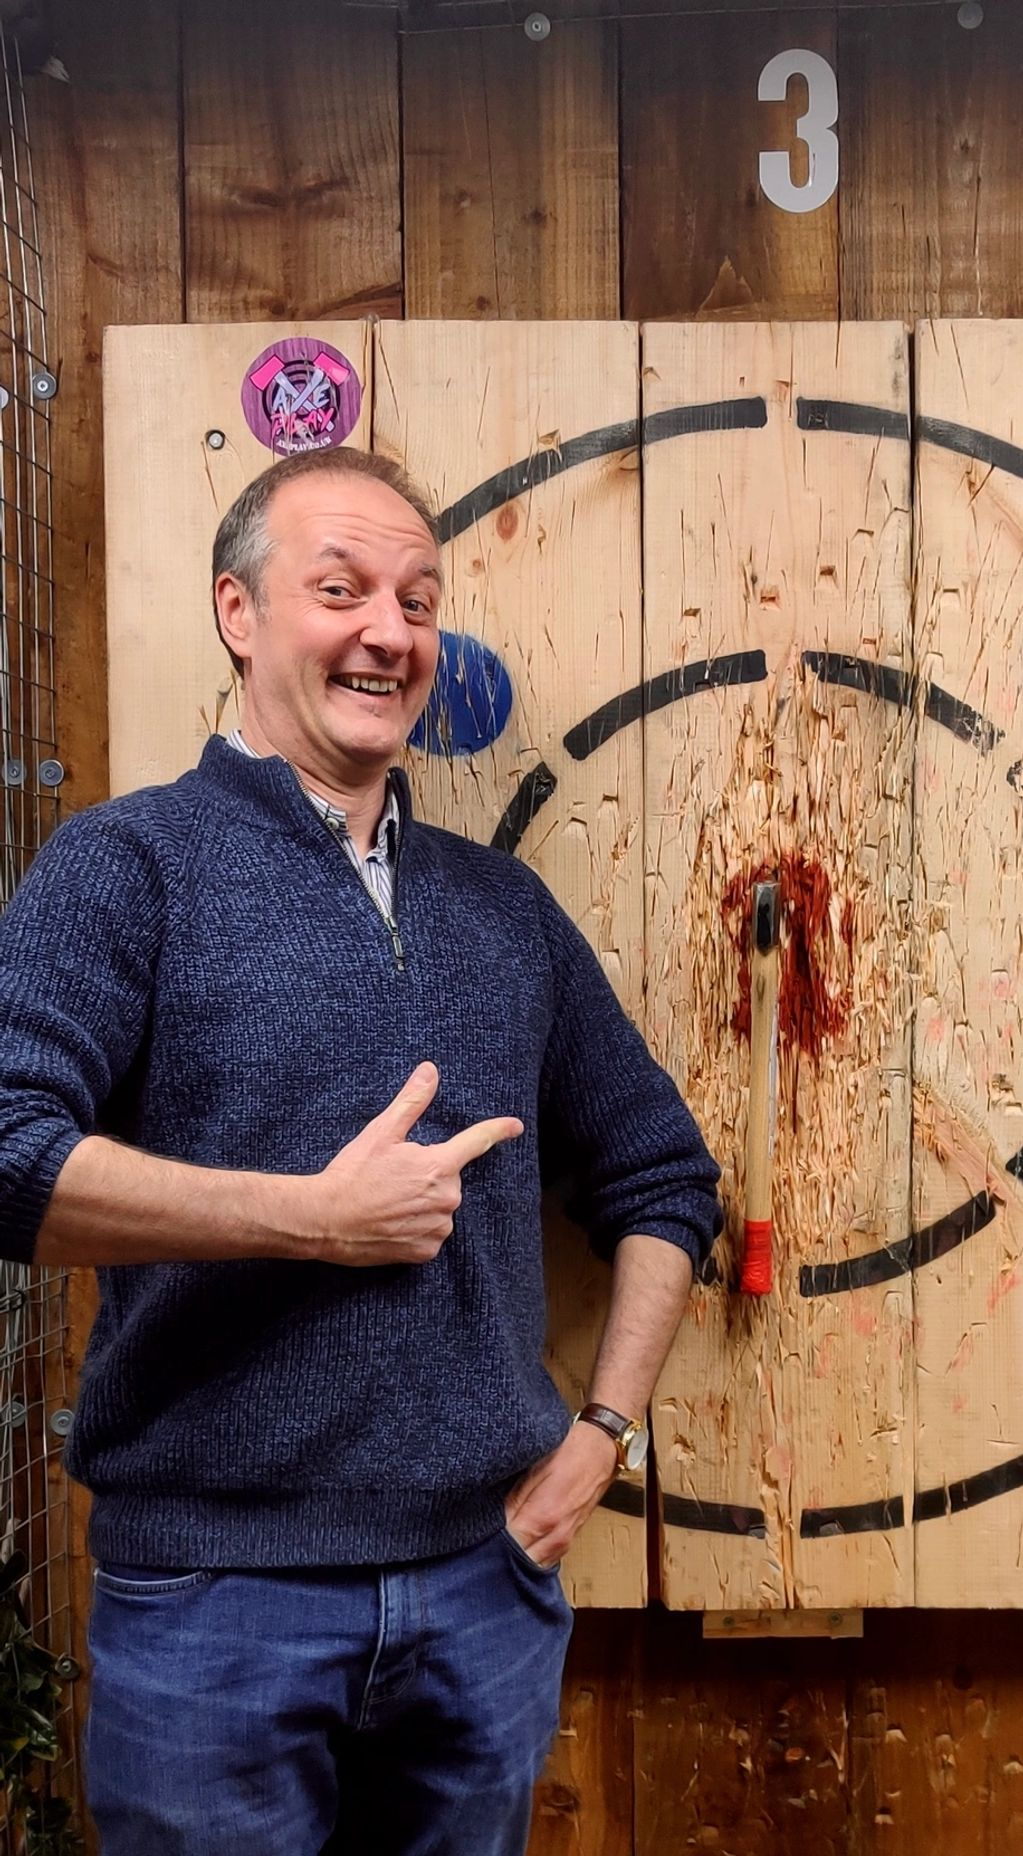 Axe Throwing @ Axe Play - Gloucester- JDR Karting & Activity Centre Gloucester